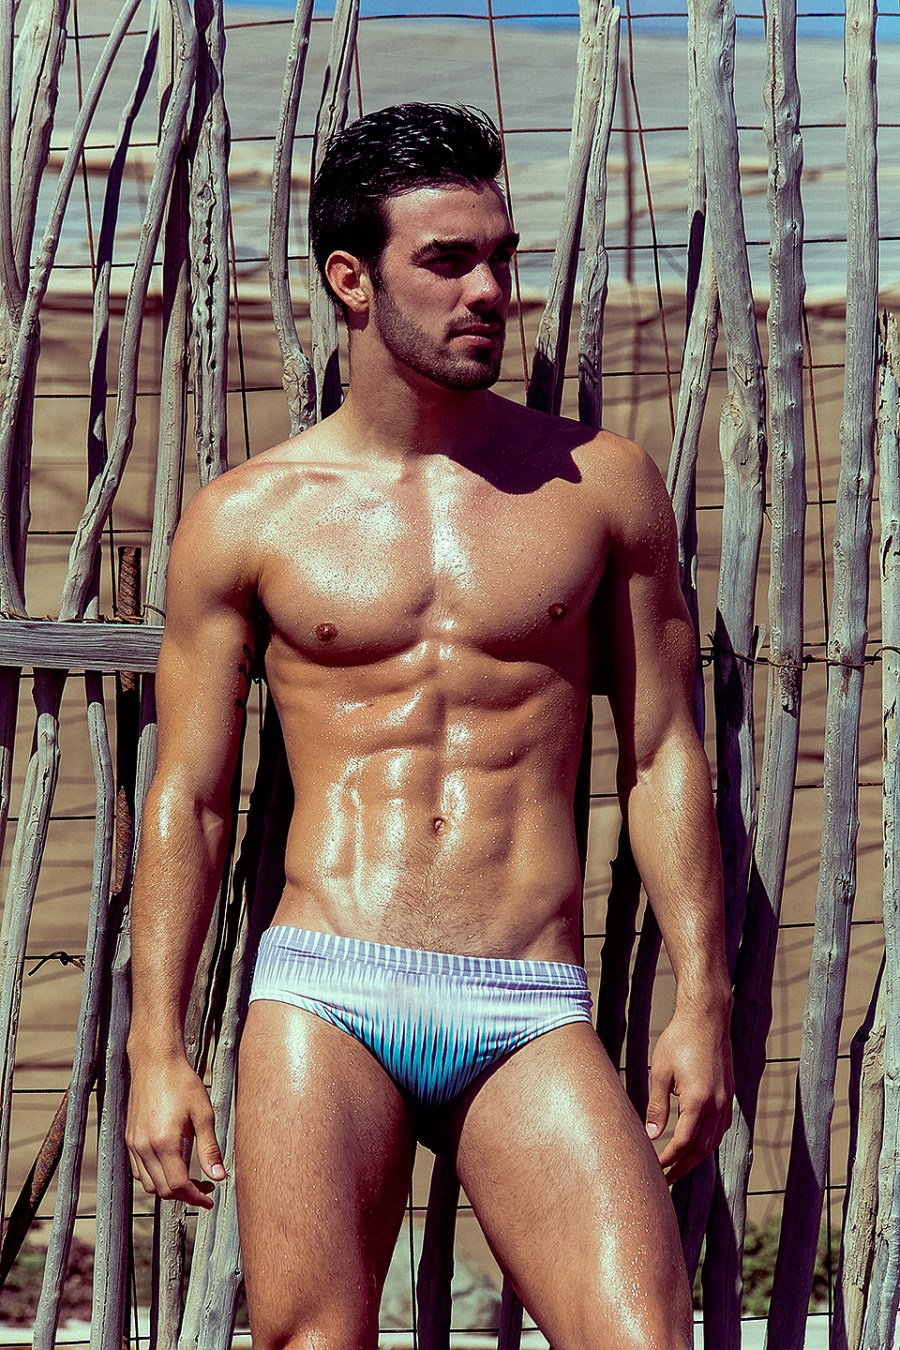 We can blame to photographer Adrián C. Martin for capturing this hunk sexy new comer Tomás Perez a Professional Waterpolo player and model, wearing pieces from Manus Swim, Shot in different locations of Gran Canaria, Canary Islands.